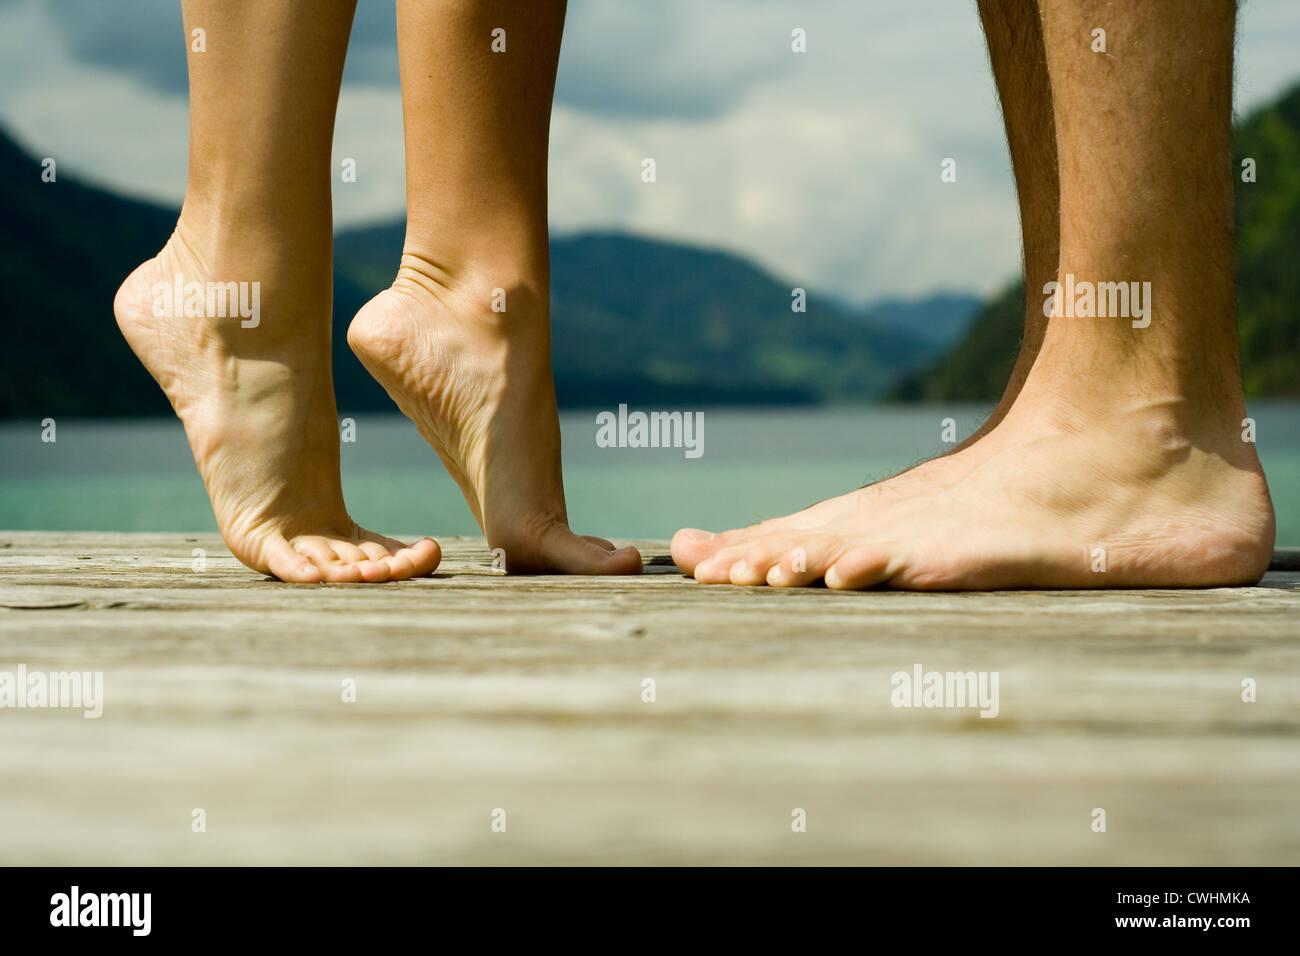 barefoot,feet,stretching,size difference - Stock Image